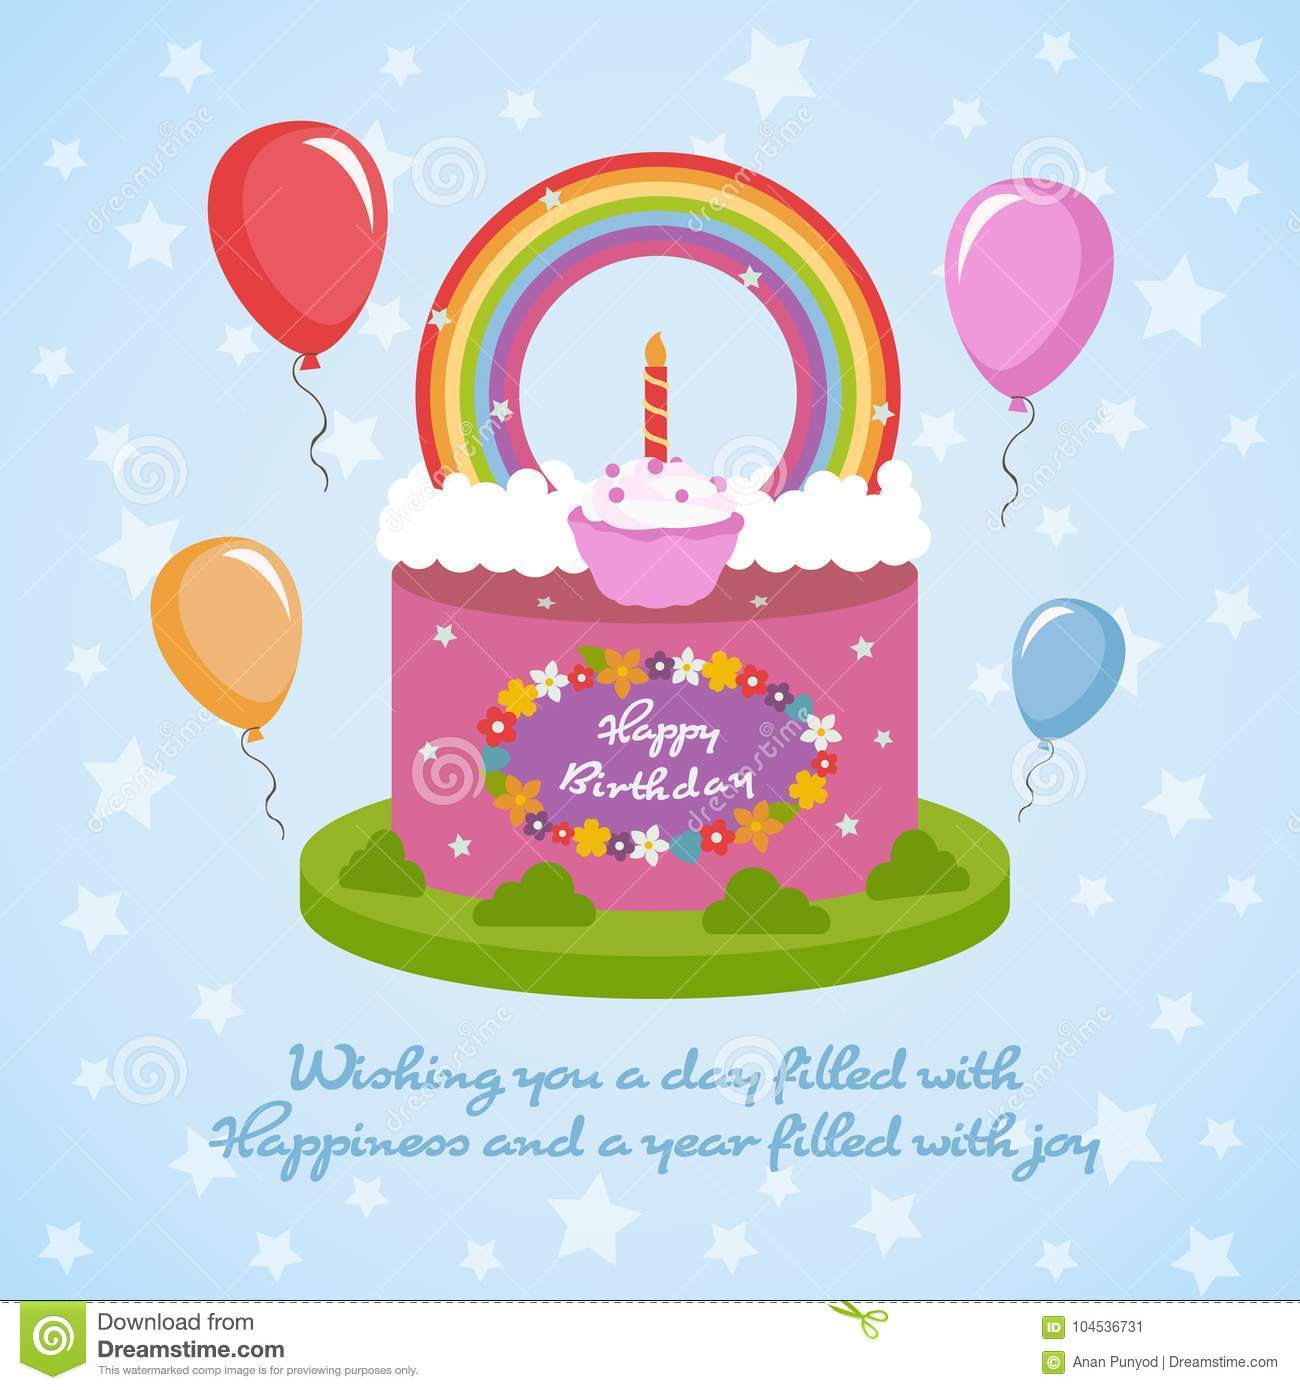 Happy Birthday Rainbow Clude Topping Cake And Flowers Balloon On